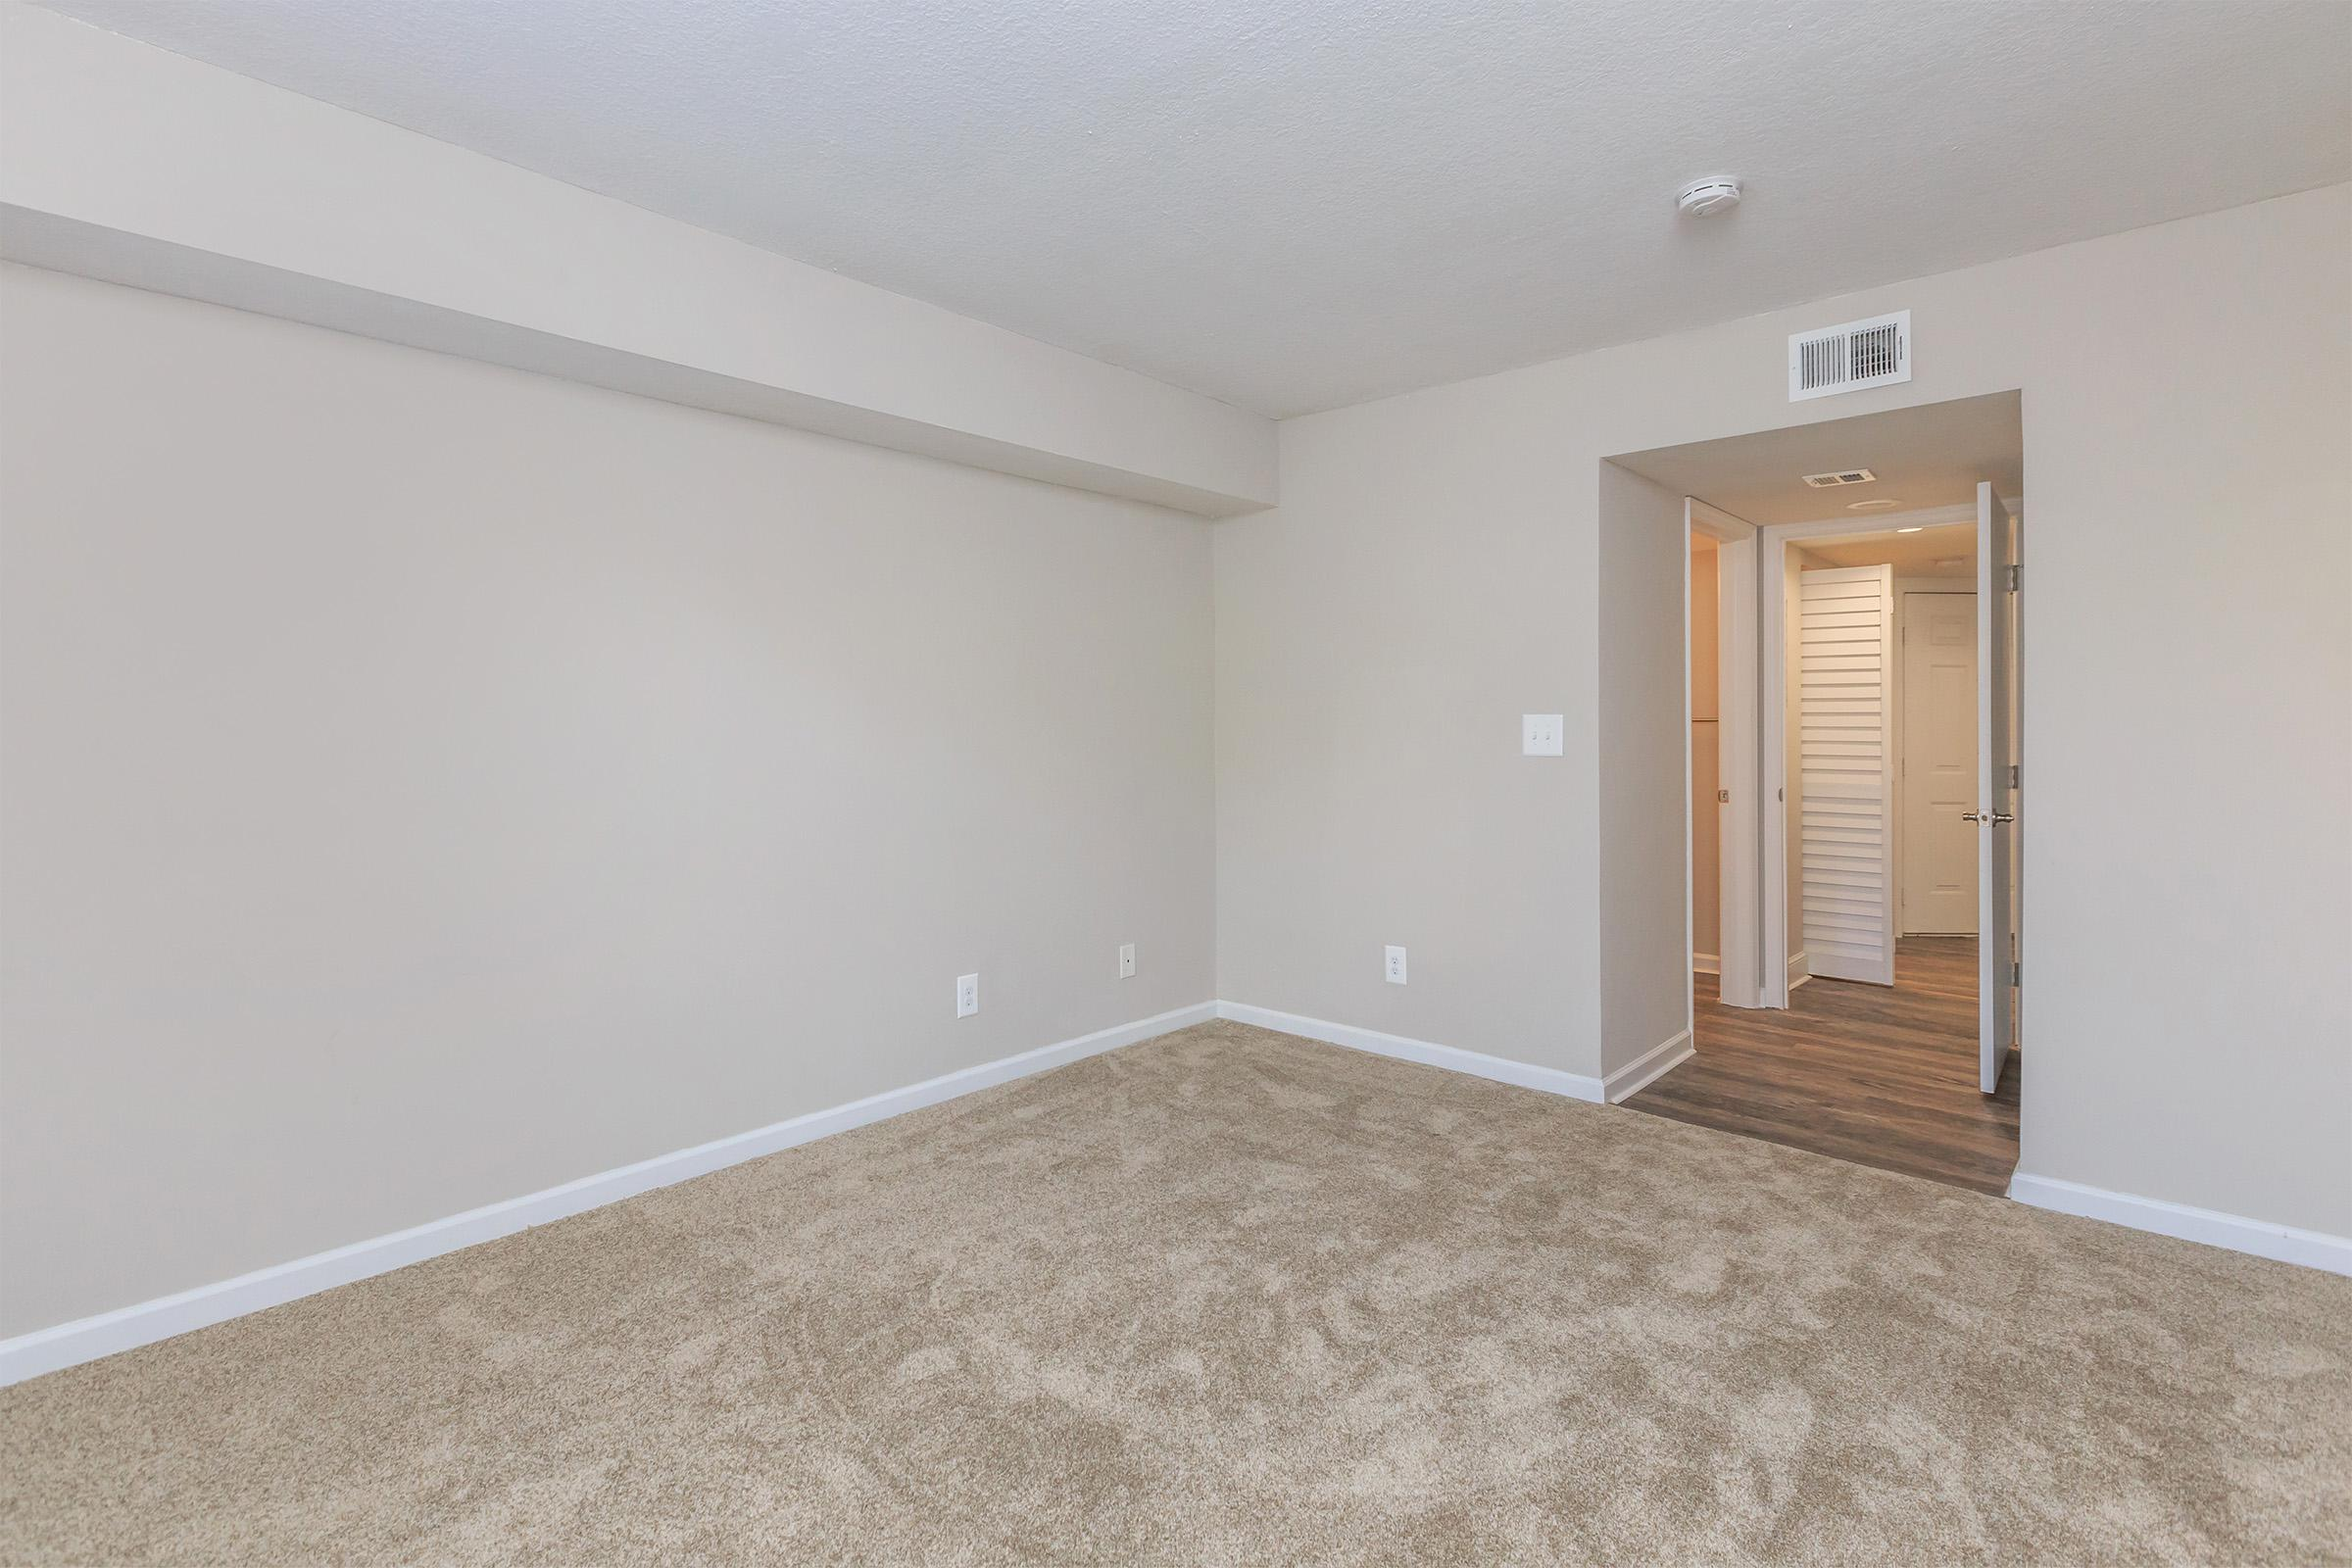 COZY CARPETED BEDROOM